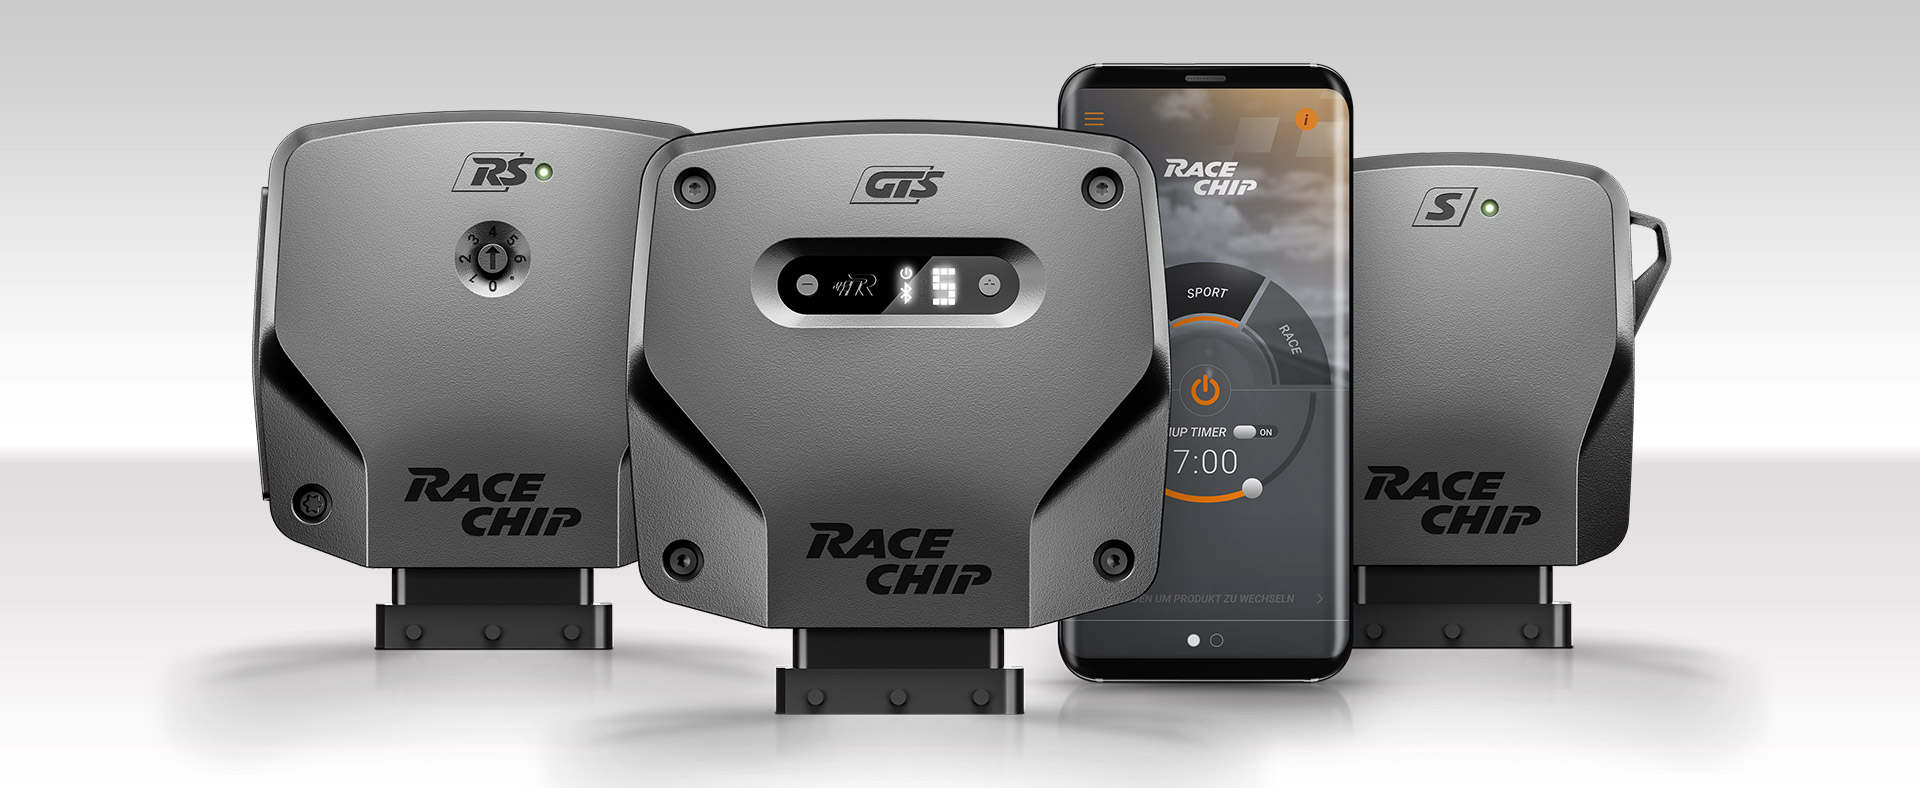 New RaceChip show car: a compact sports car with racing character